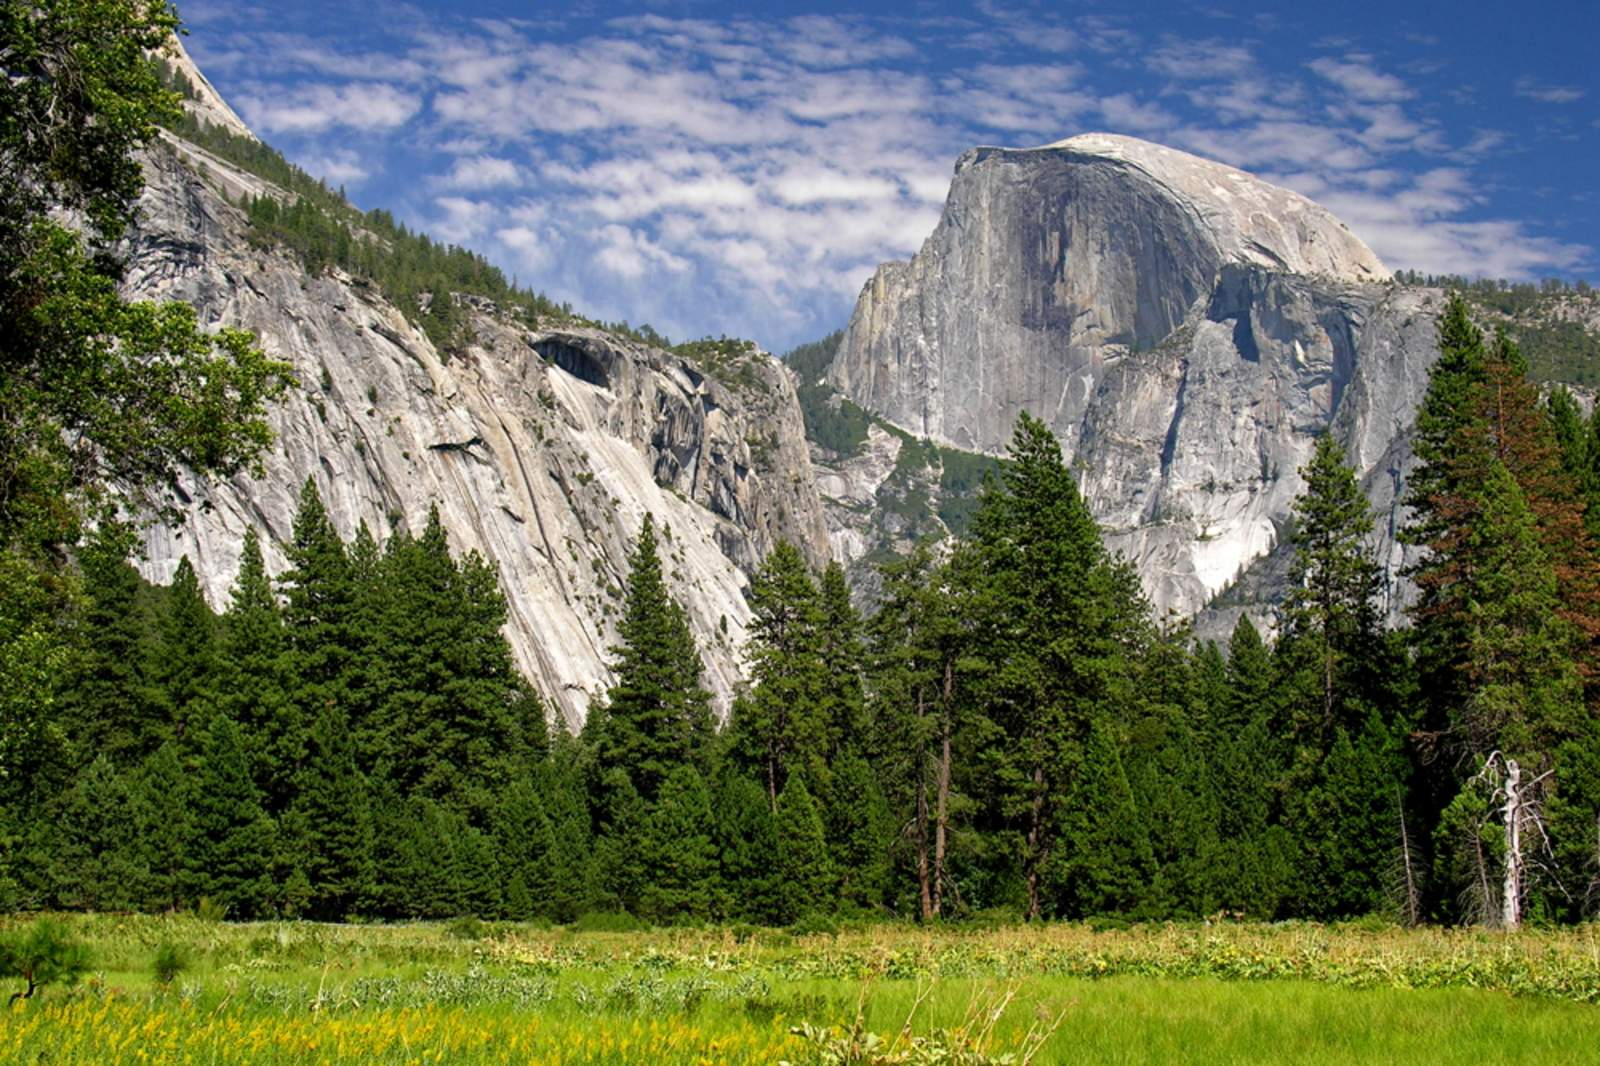 yosemite national park buddhist single men There are 1,162 square miles of yosemite national park outside the teeming valley, and enterprising visitors with stamina and time find a few untrammeled spots where the wild west becomes wild again.